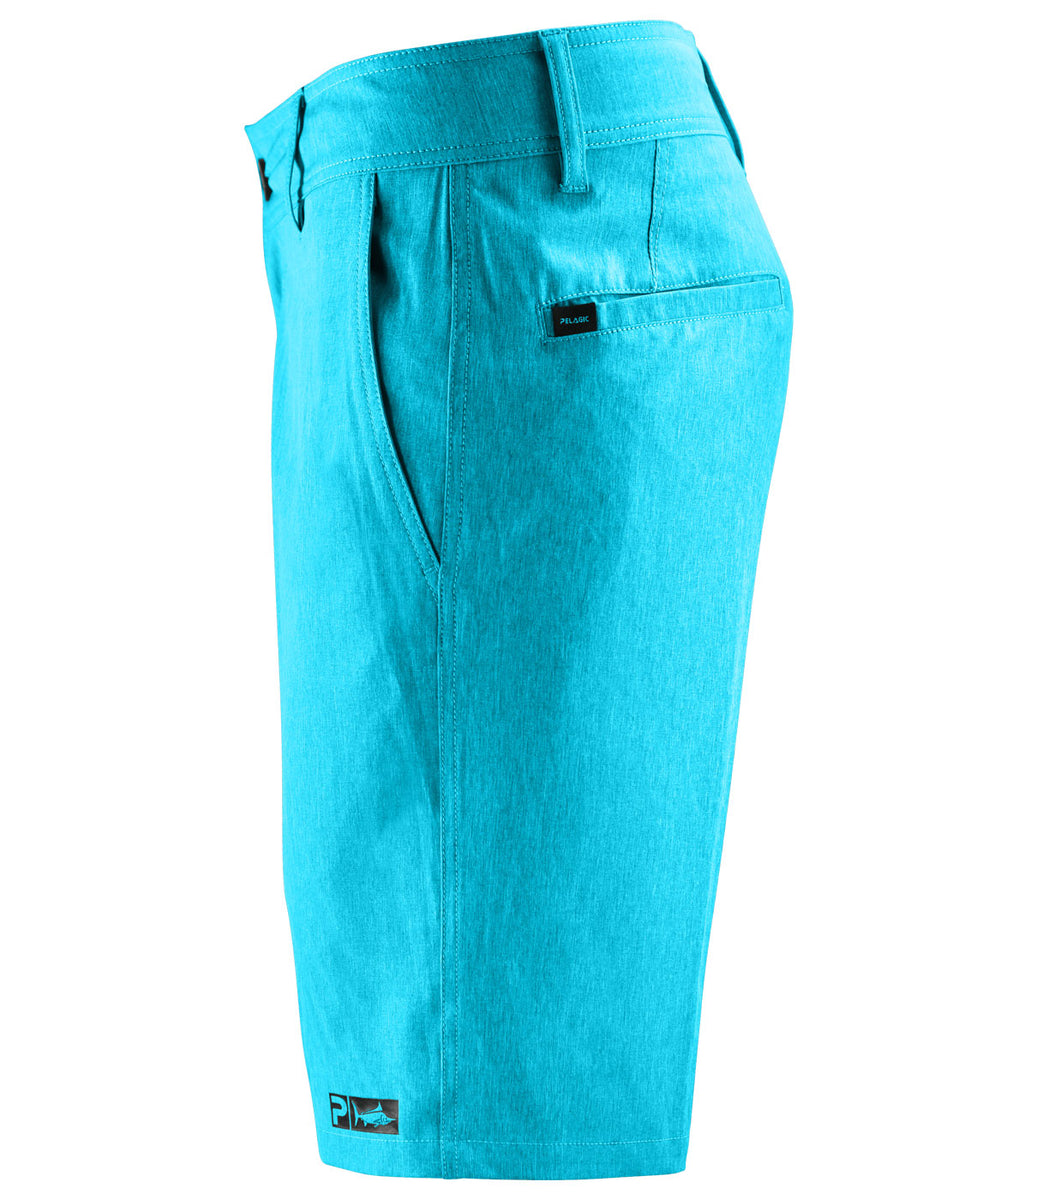 Deep Sea Hybrid Fishing Shorts - Youth Big Image - 10